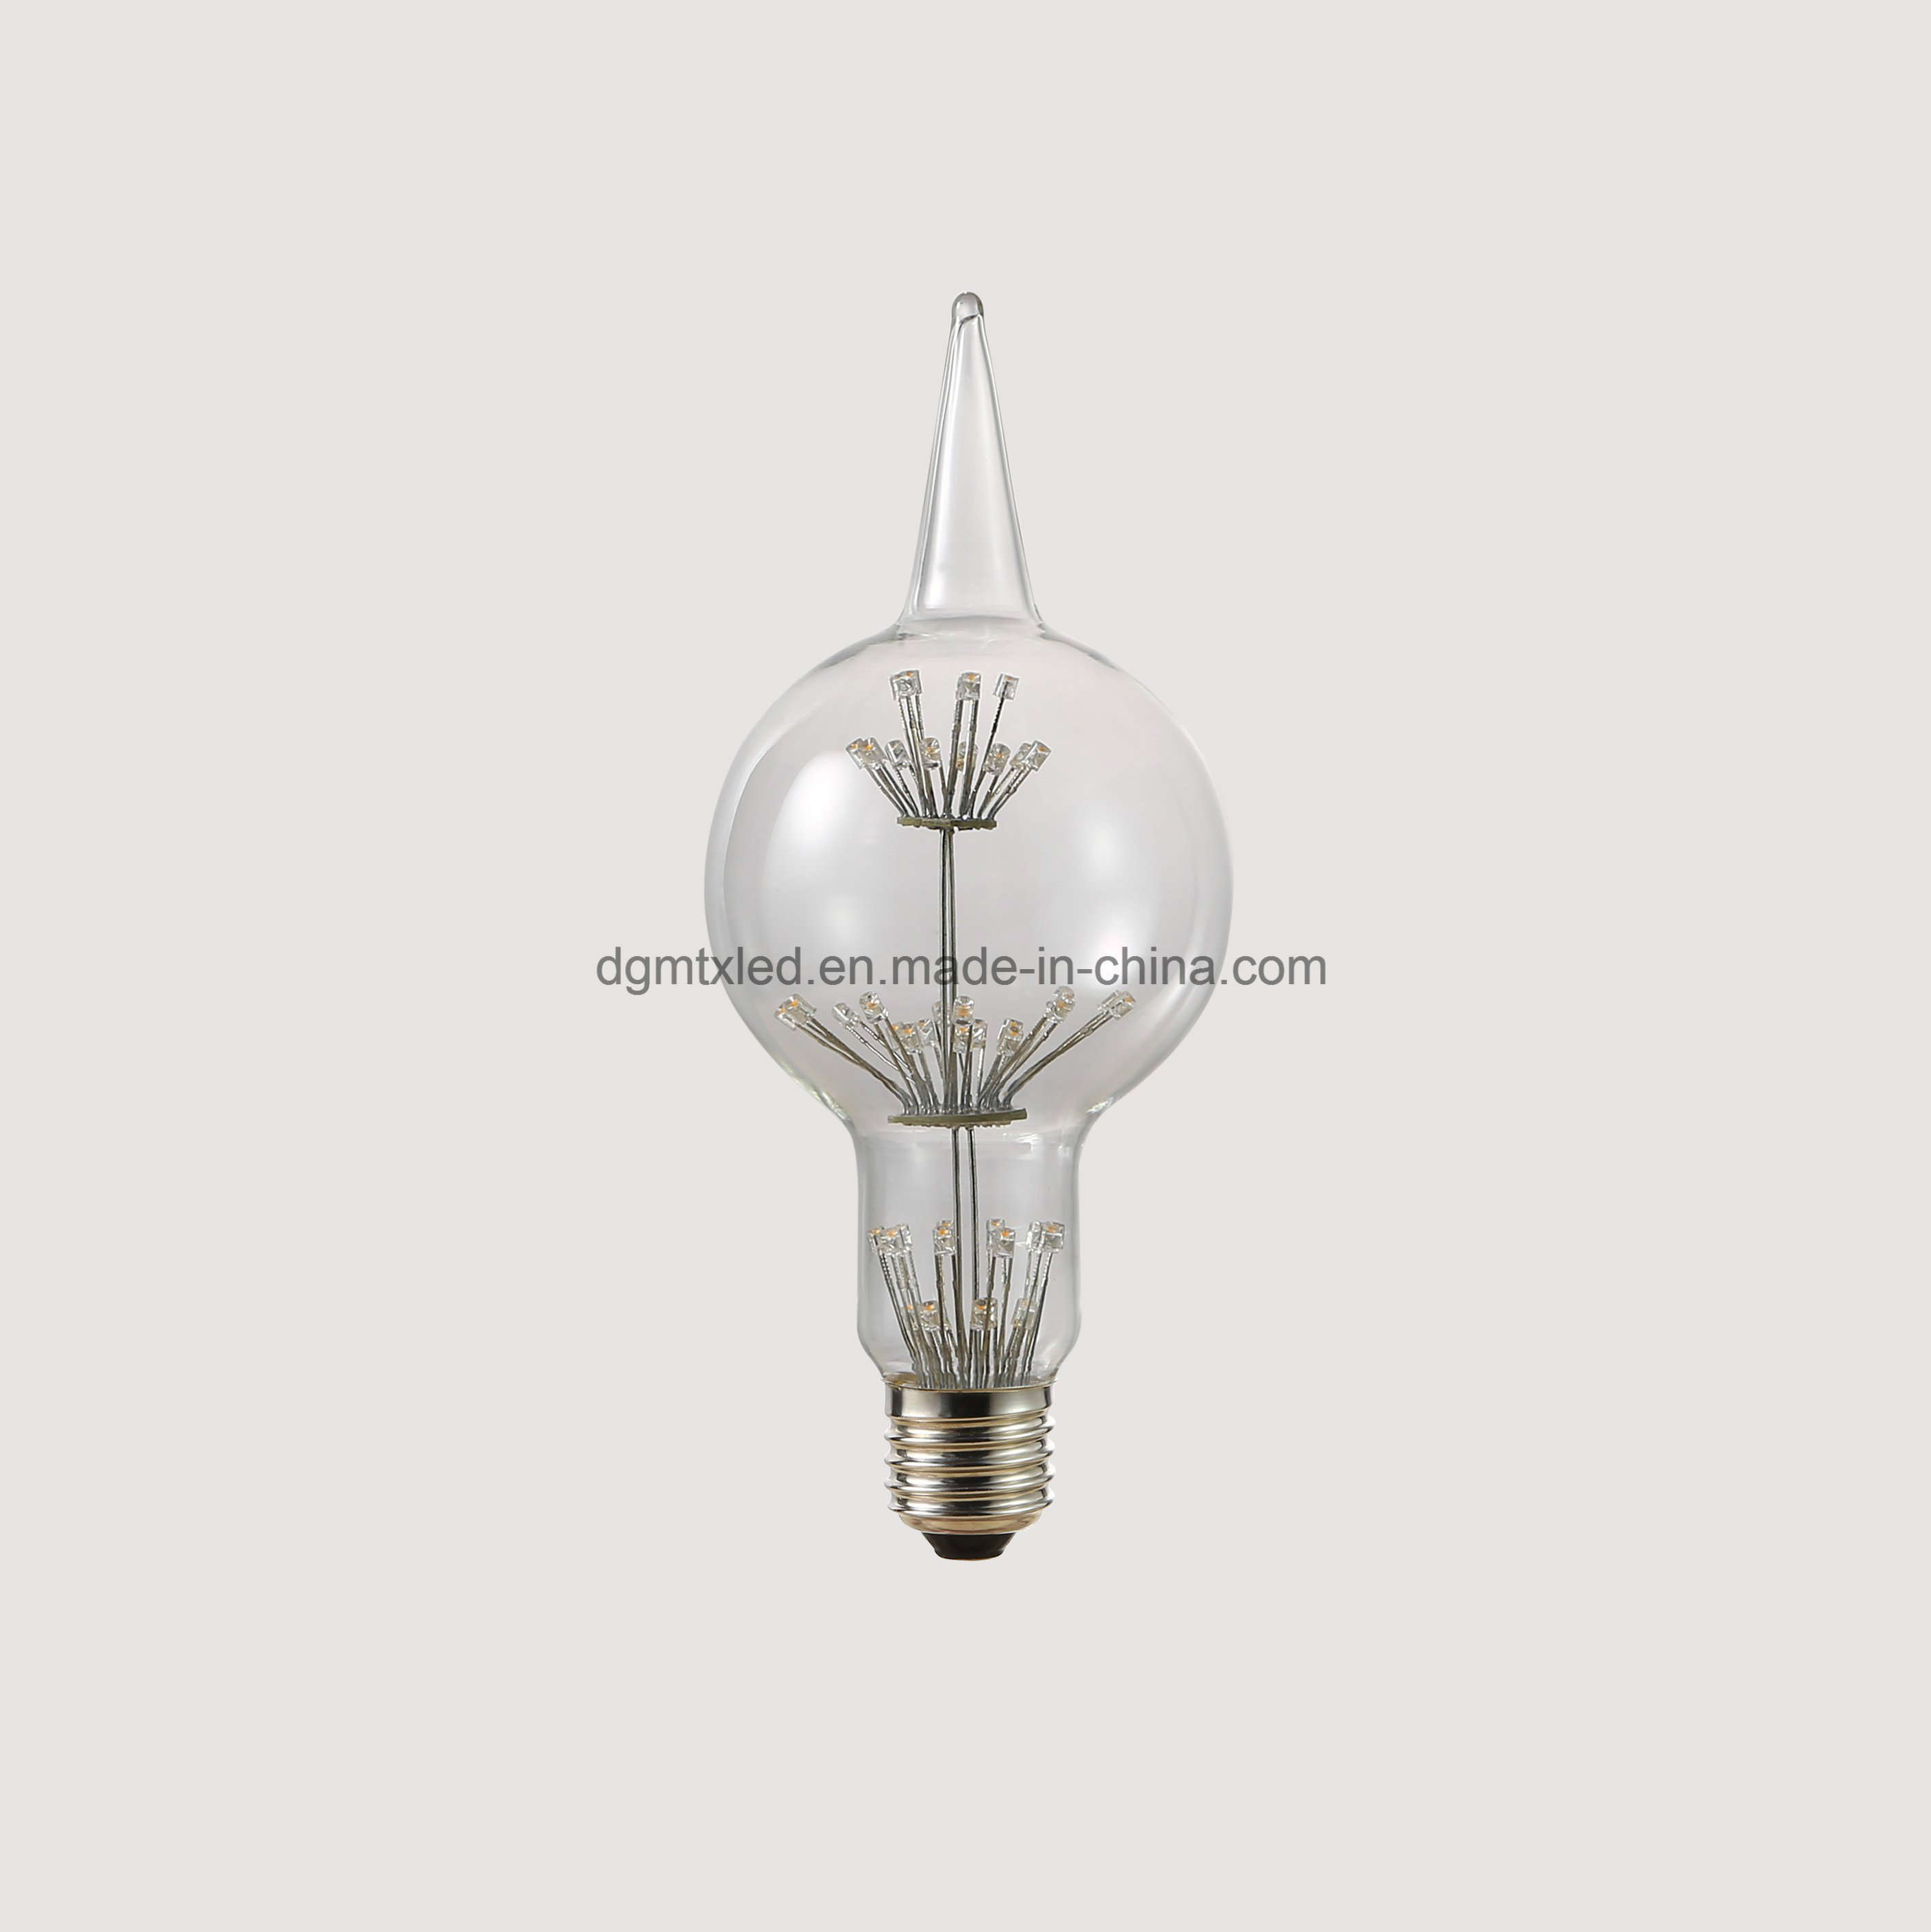 LED rechargeable emergency light bulb 2700K, LED diode 3W bulb pictures & photos